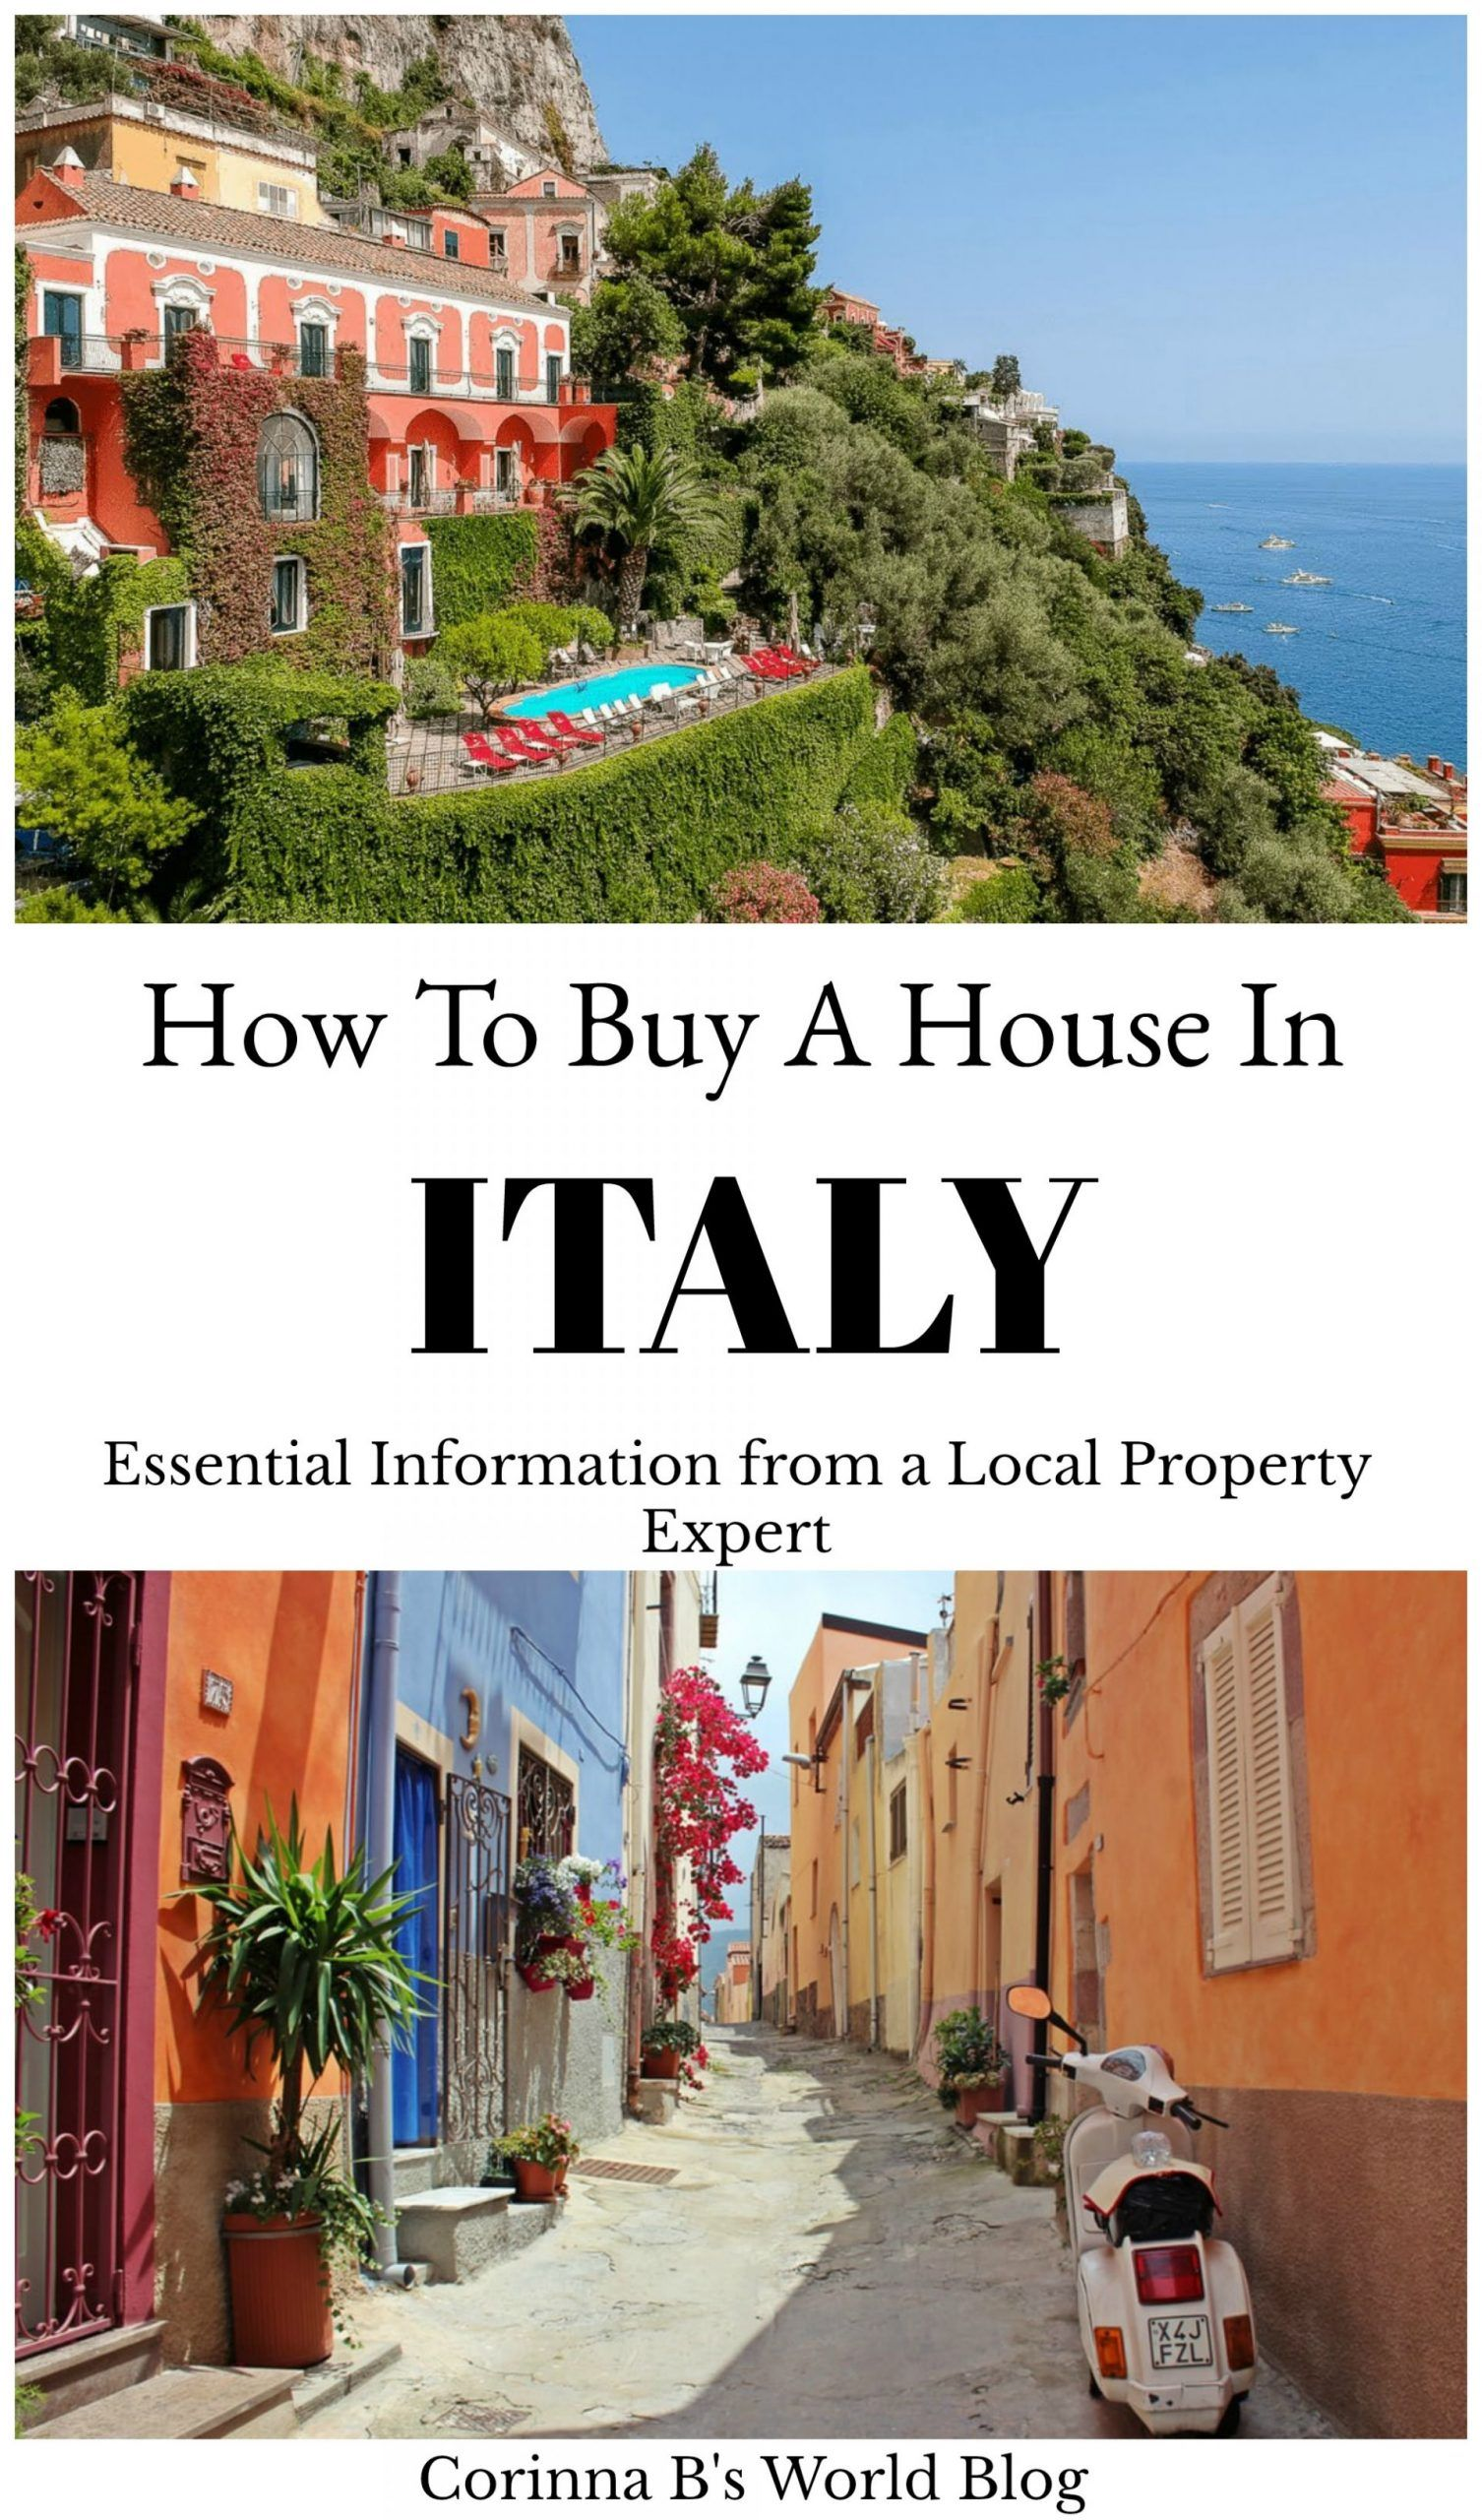 How To Buy A House In Italy - Corinna B's World